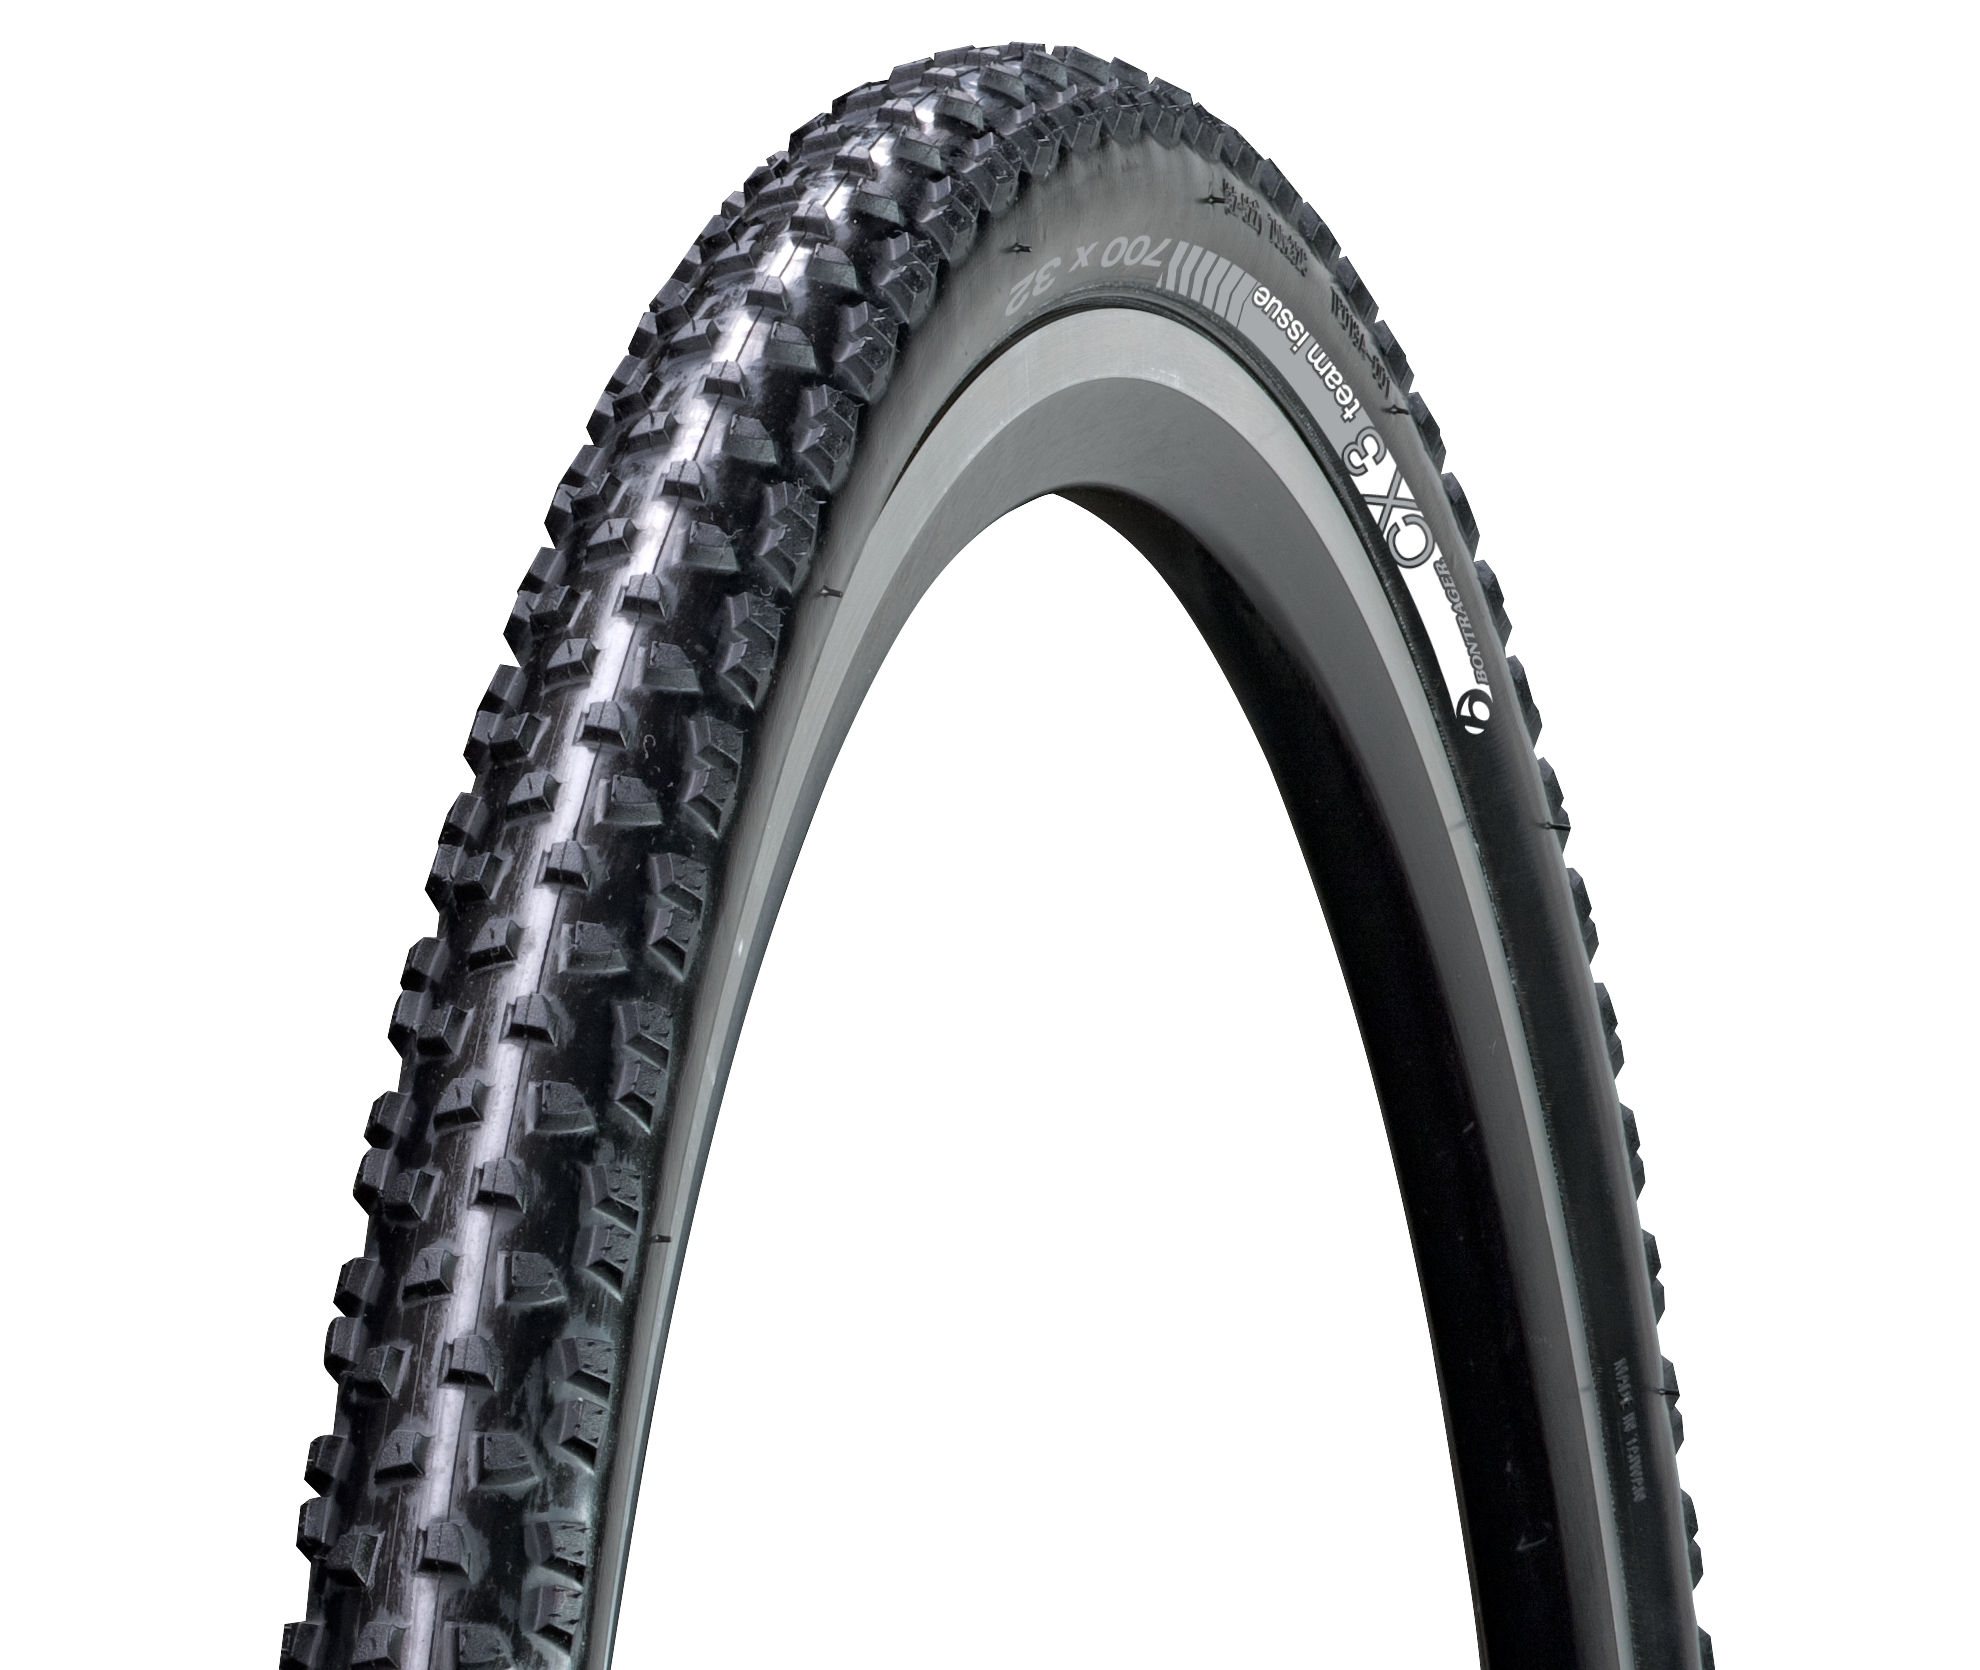 Local Tire Shops >> Bontrager CX3 Cyclocross Tire   Bike tires & tubes   Cycling components   Equipment